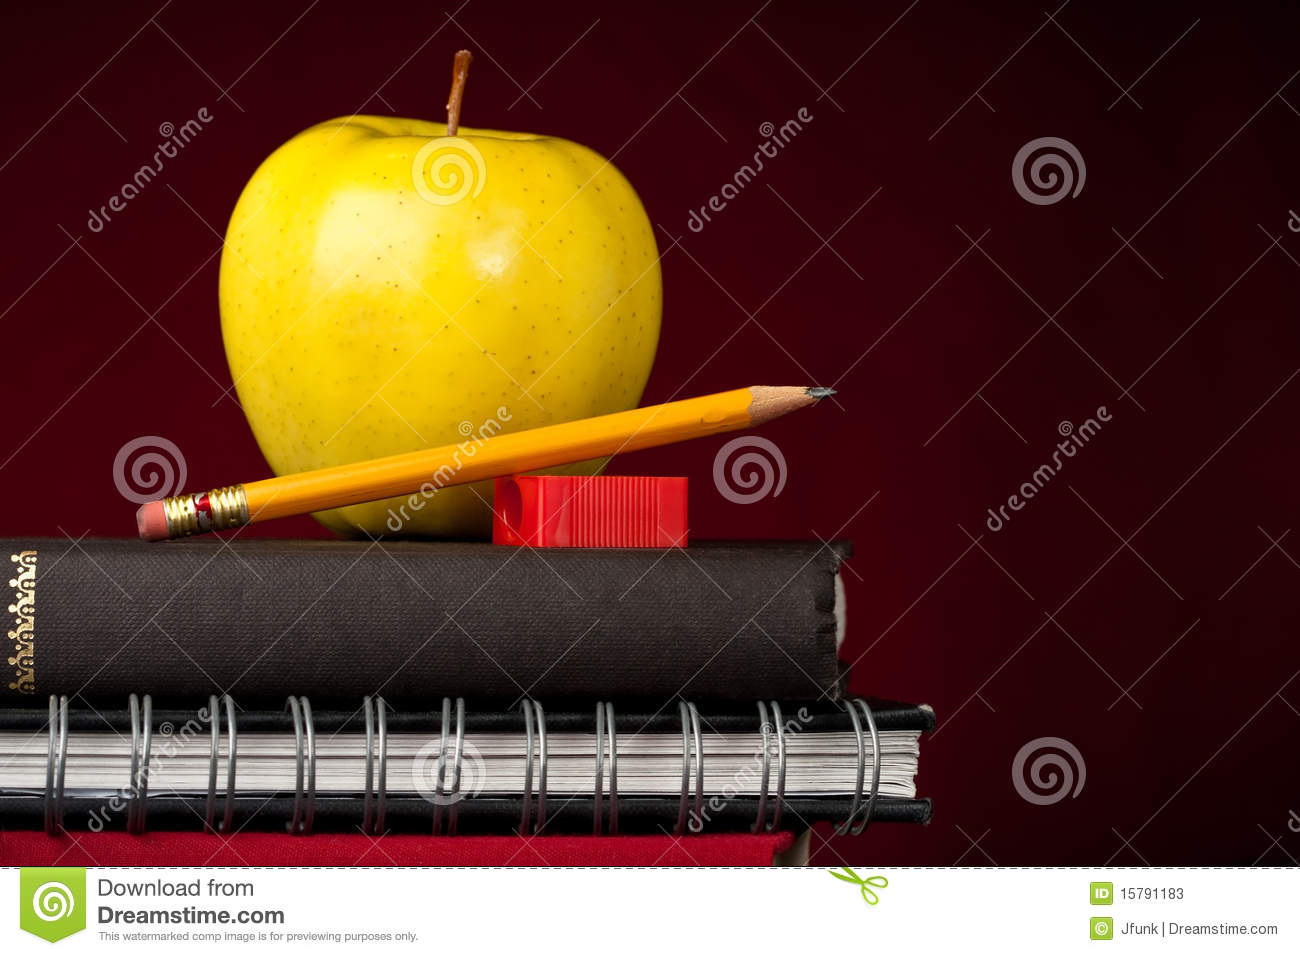 Apple and School Supplies